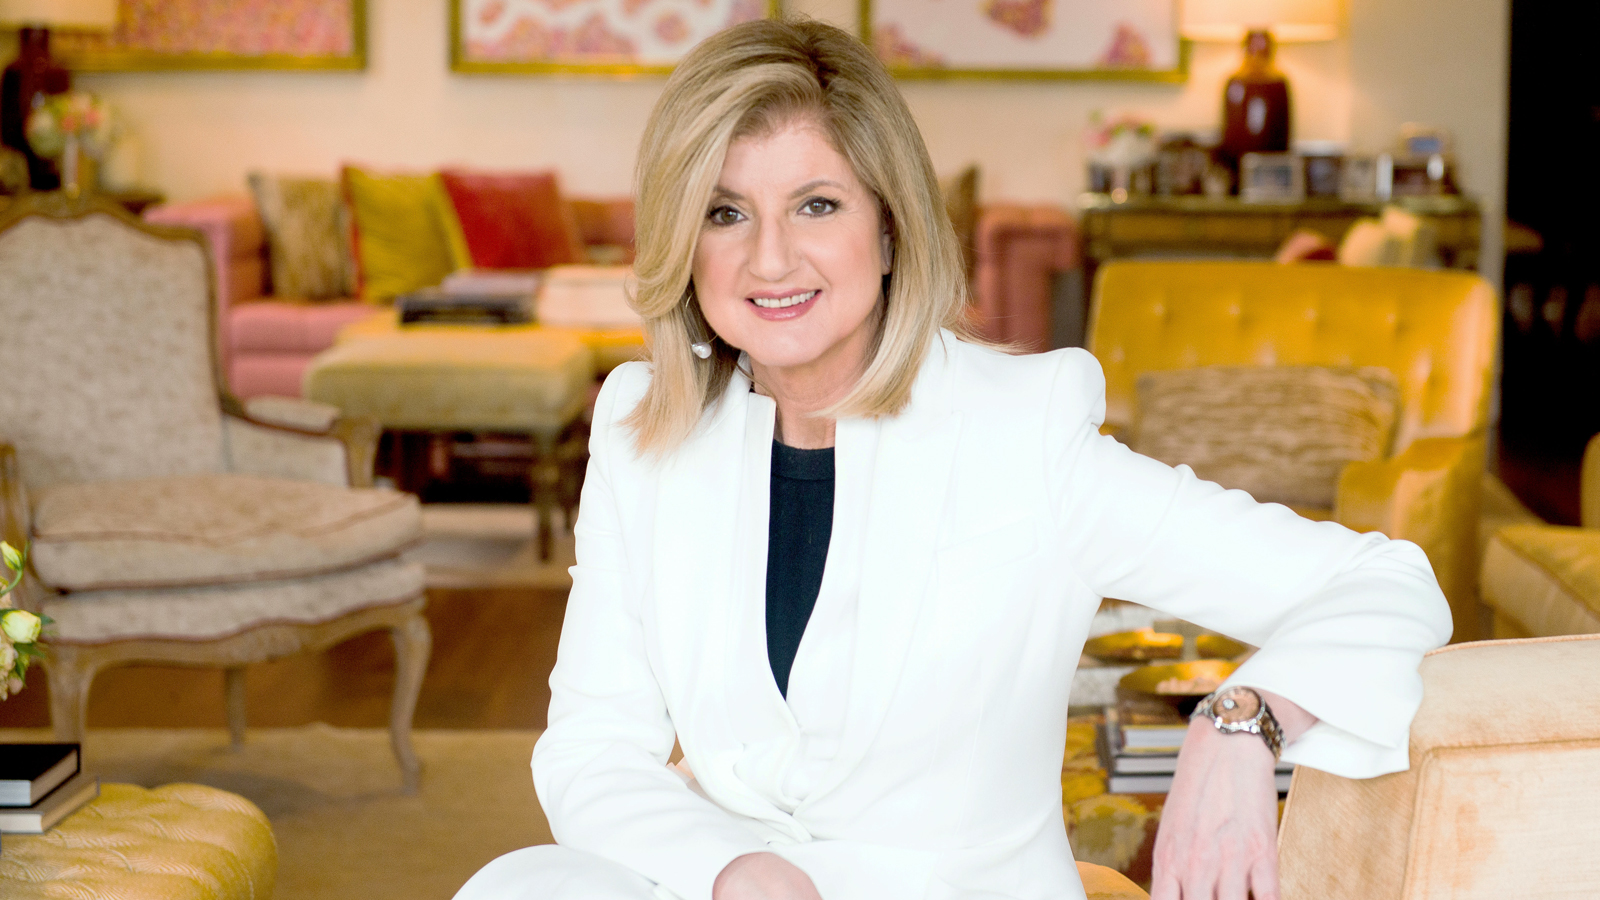 How to have a perfect night's sleep, according to sleep queen Arianna Huffington